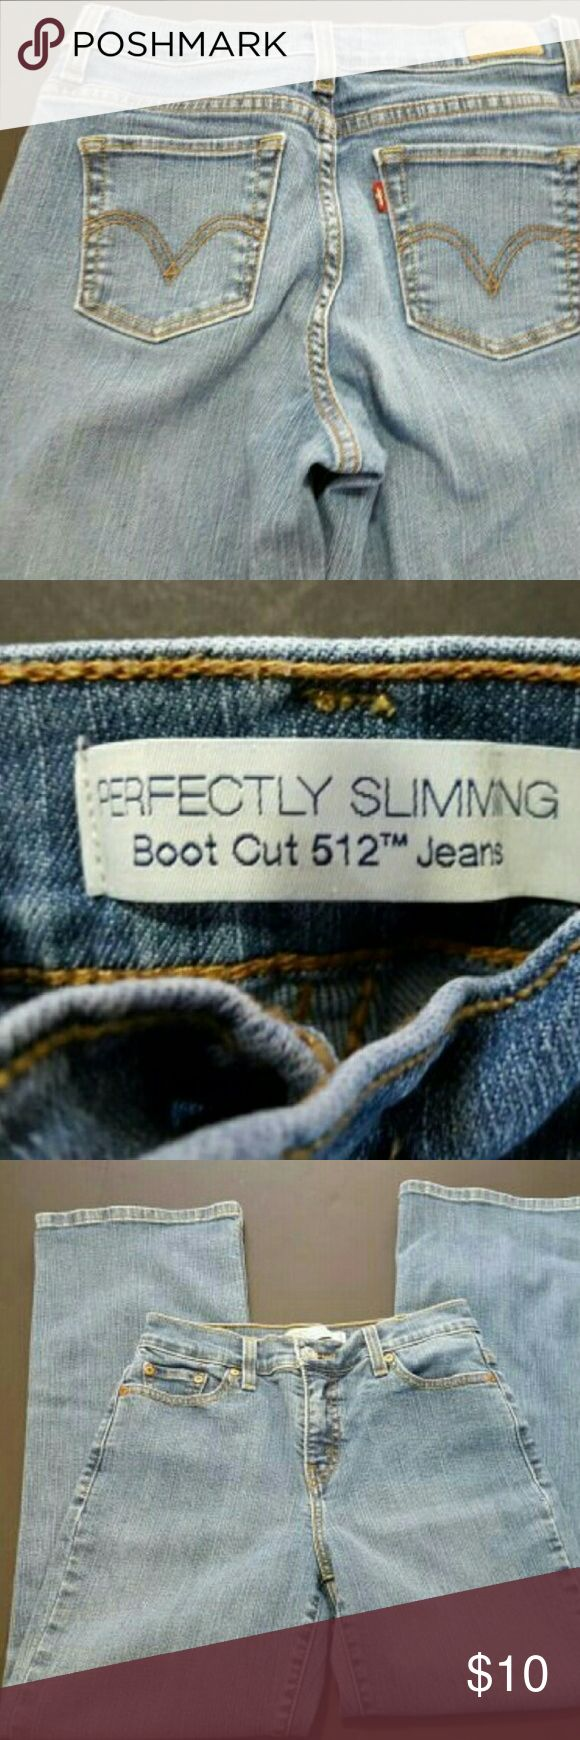 """LEVI'S 512 PERFECTLY SLIMMING BOOTCUT  JEANS GUC LEVI'S 512 PERFECTLY SLIMMING BOOTCUT  JEANS GUC  This is a great condition pair of jeans from LEVI'S! They are a women's size 6 in a boot cut style. Laying flat the waist measures 13.75"""" and the inseam is 30.5"""". They are a light wash with a good amount of stretch. These are pre-owned and some signs of use should be expected.? Levi's Jeans Boot Cut"""